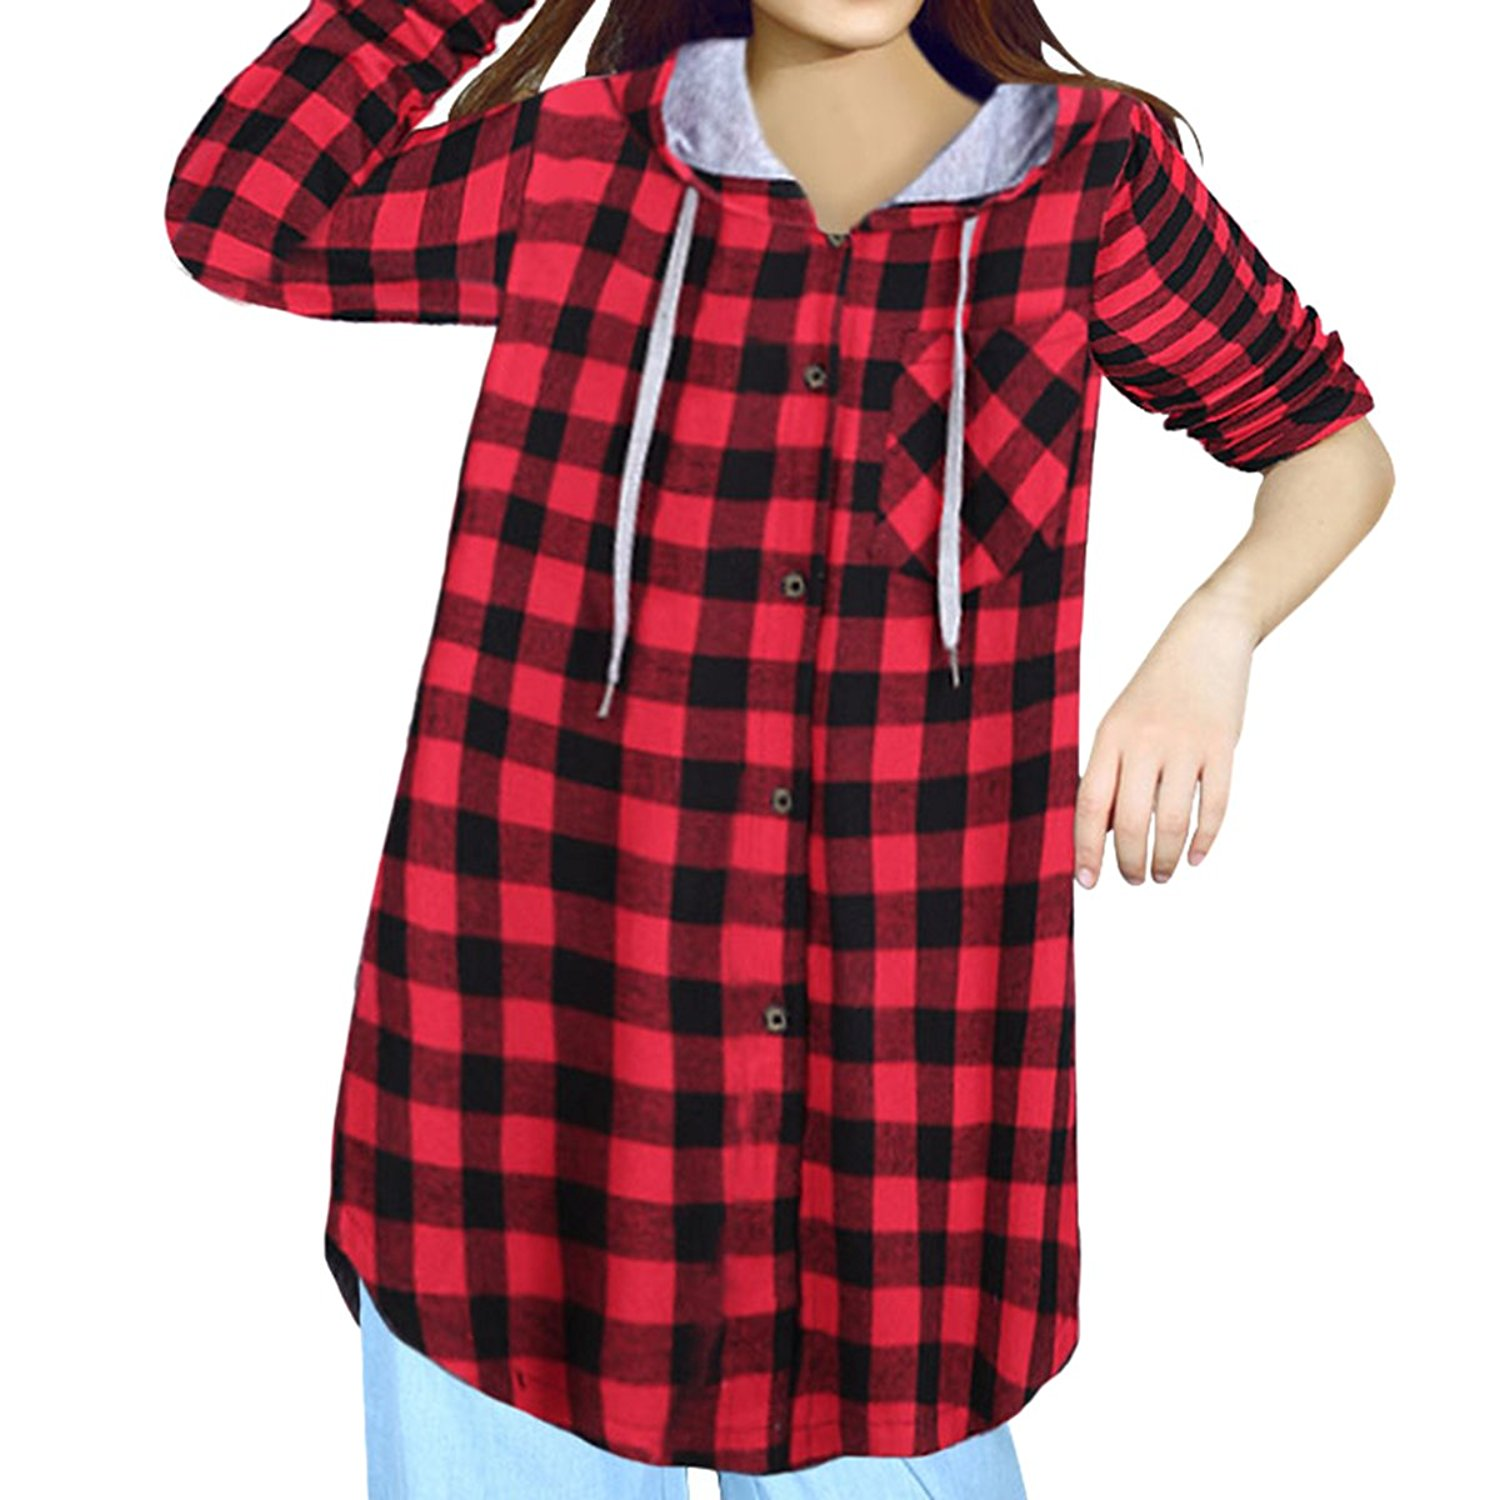 26ac88b45adbc Get Quotations · E.JAN1ST Women's Hoodie Jacket Flannel Plaid Loose Fit  Oversized Boyfriend Shirt